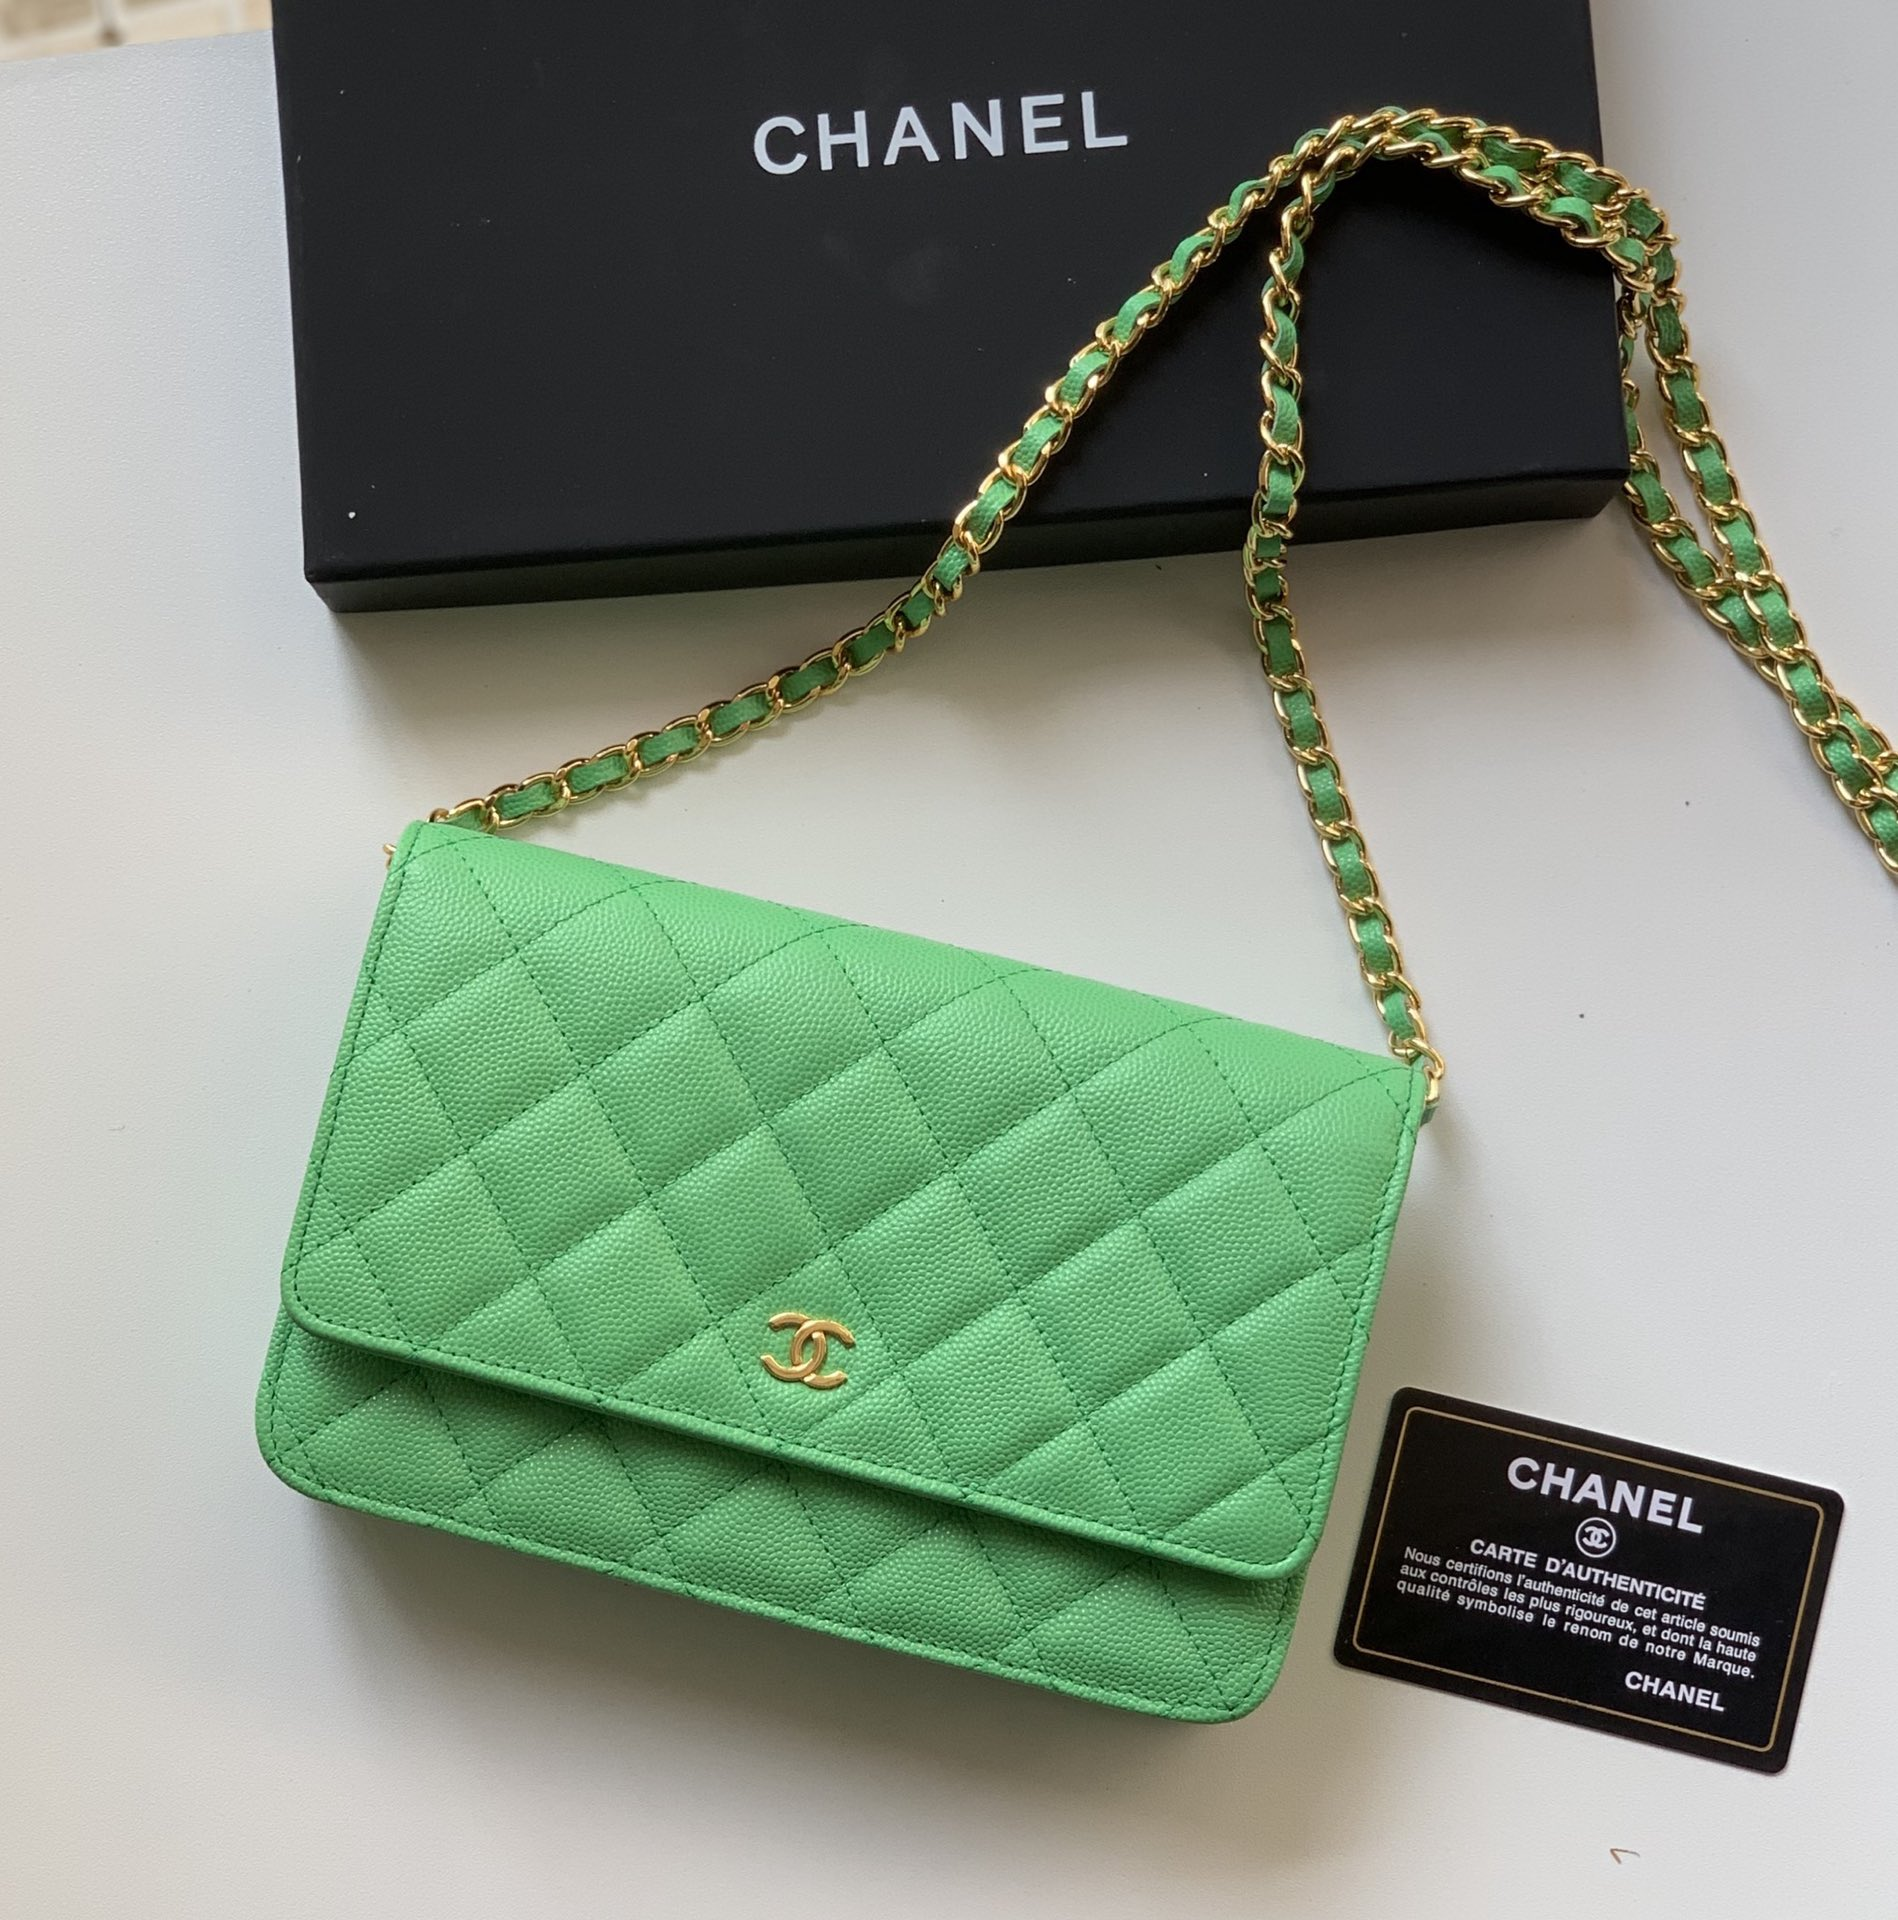 Top Quality Chanel Woc Wallet On Chain Iridescent Grained Lambskin Gold-Tone Metal Medium Green